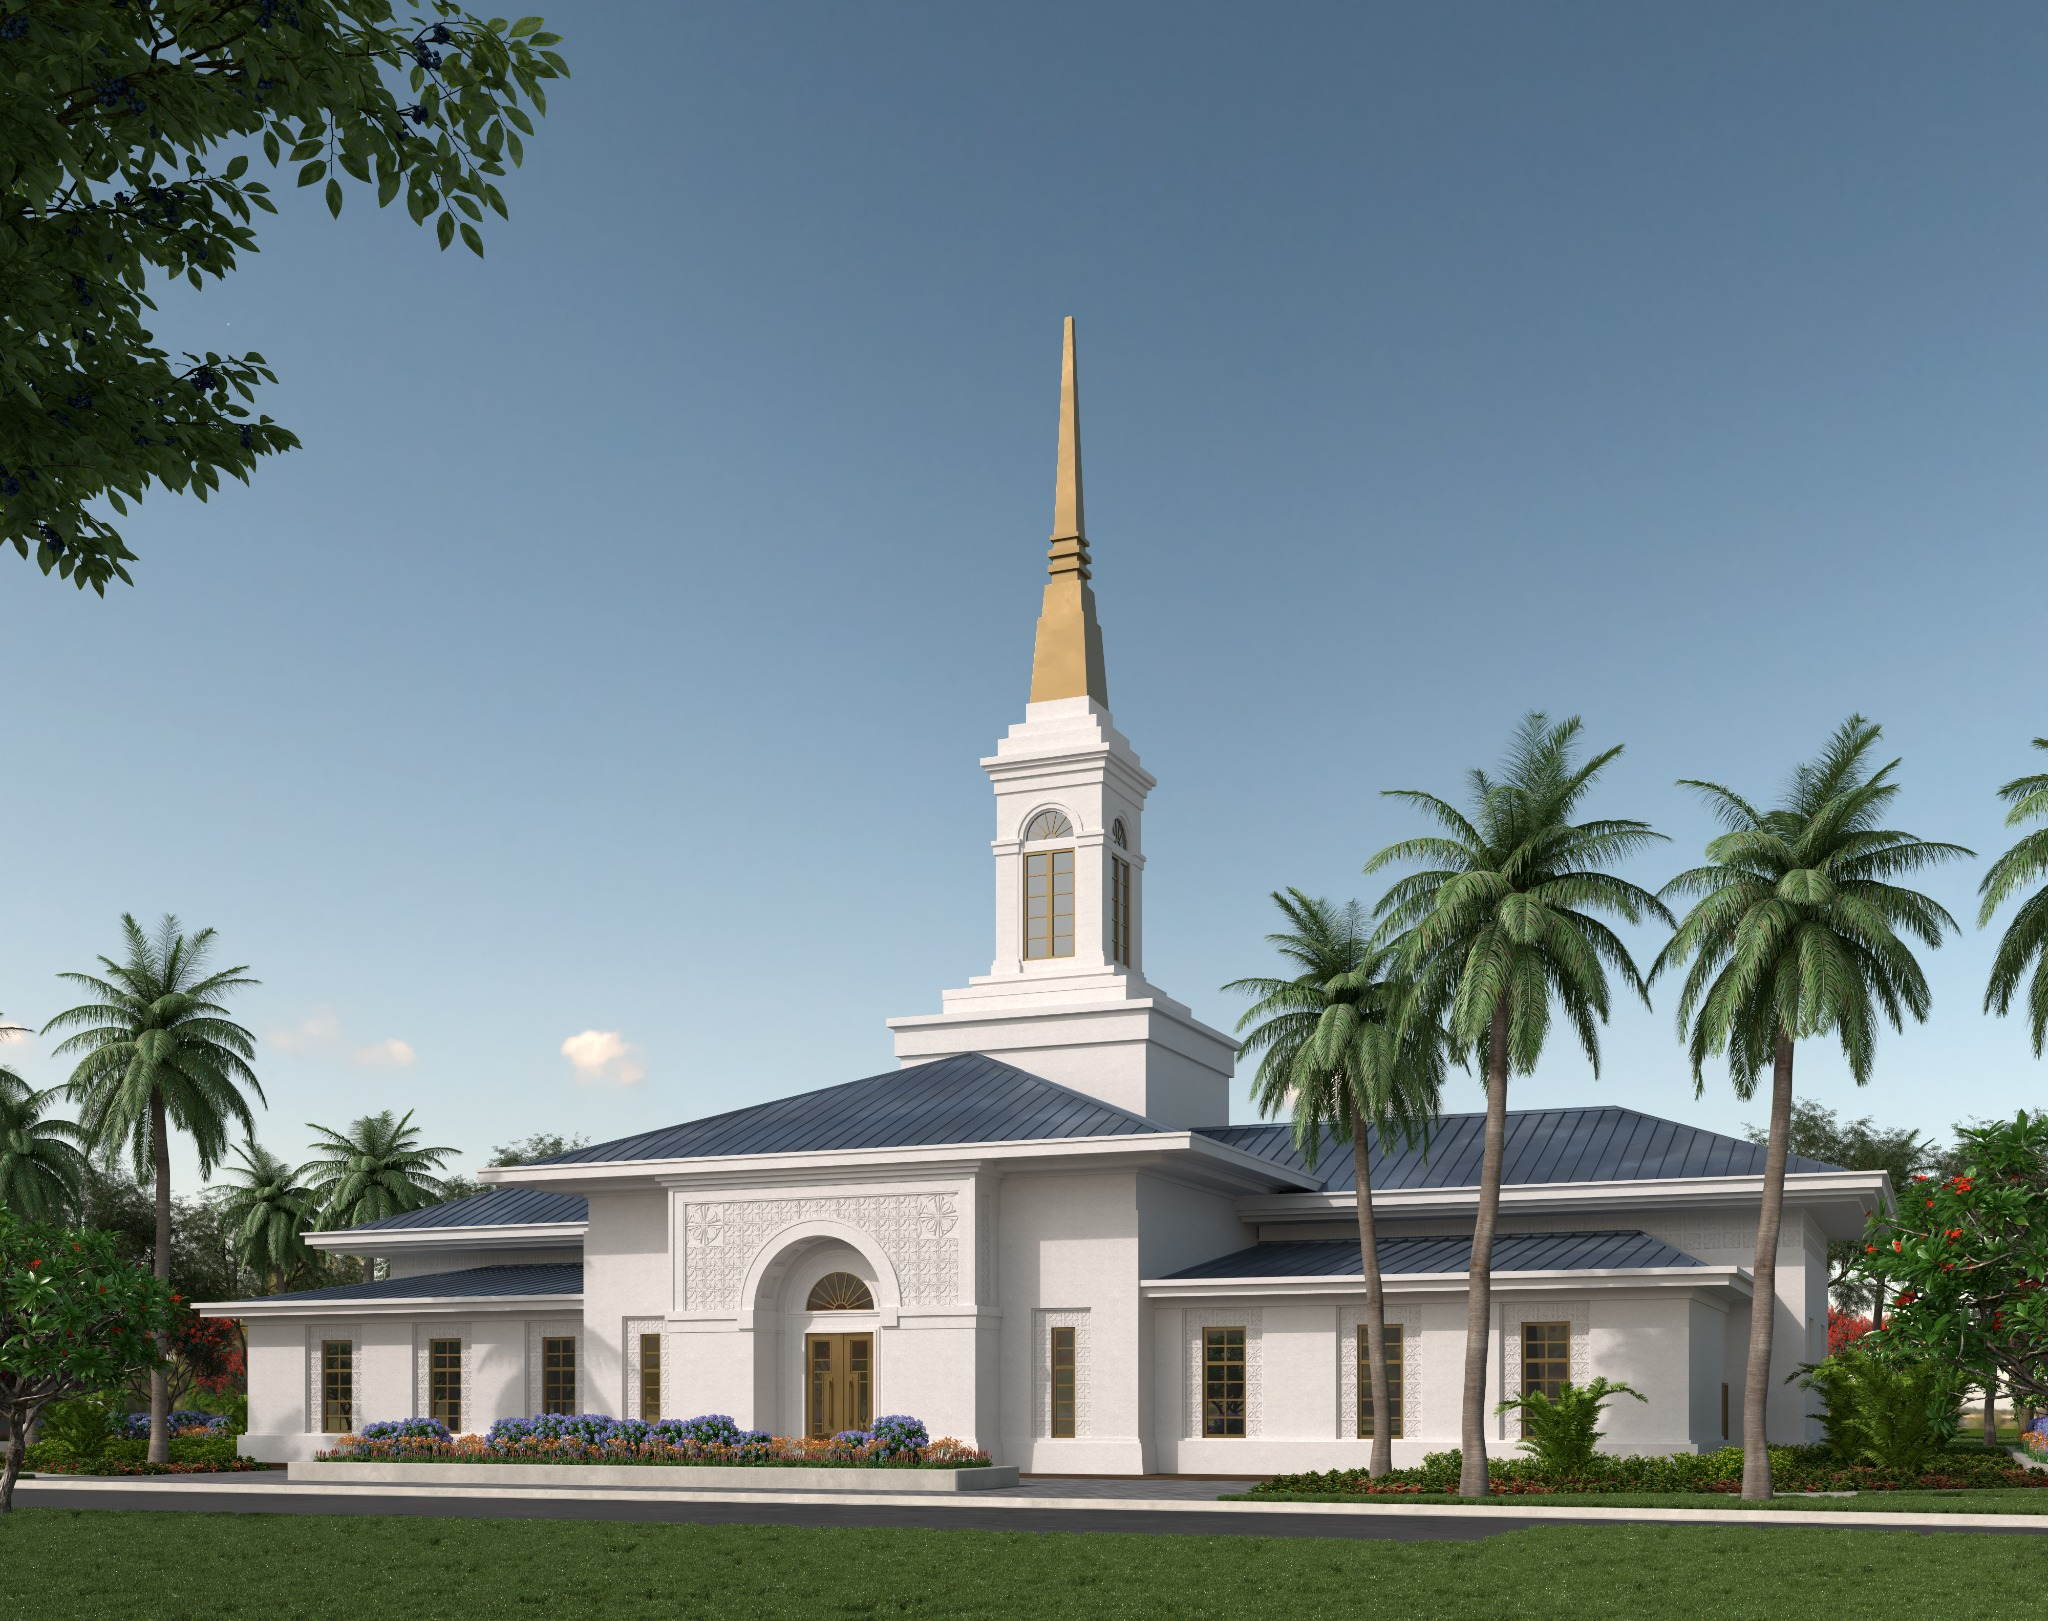 An exterior rendering of the Neiafu Tonga Temple in the South Pacific.